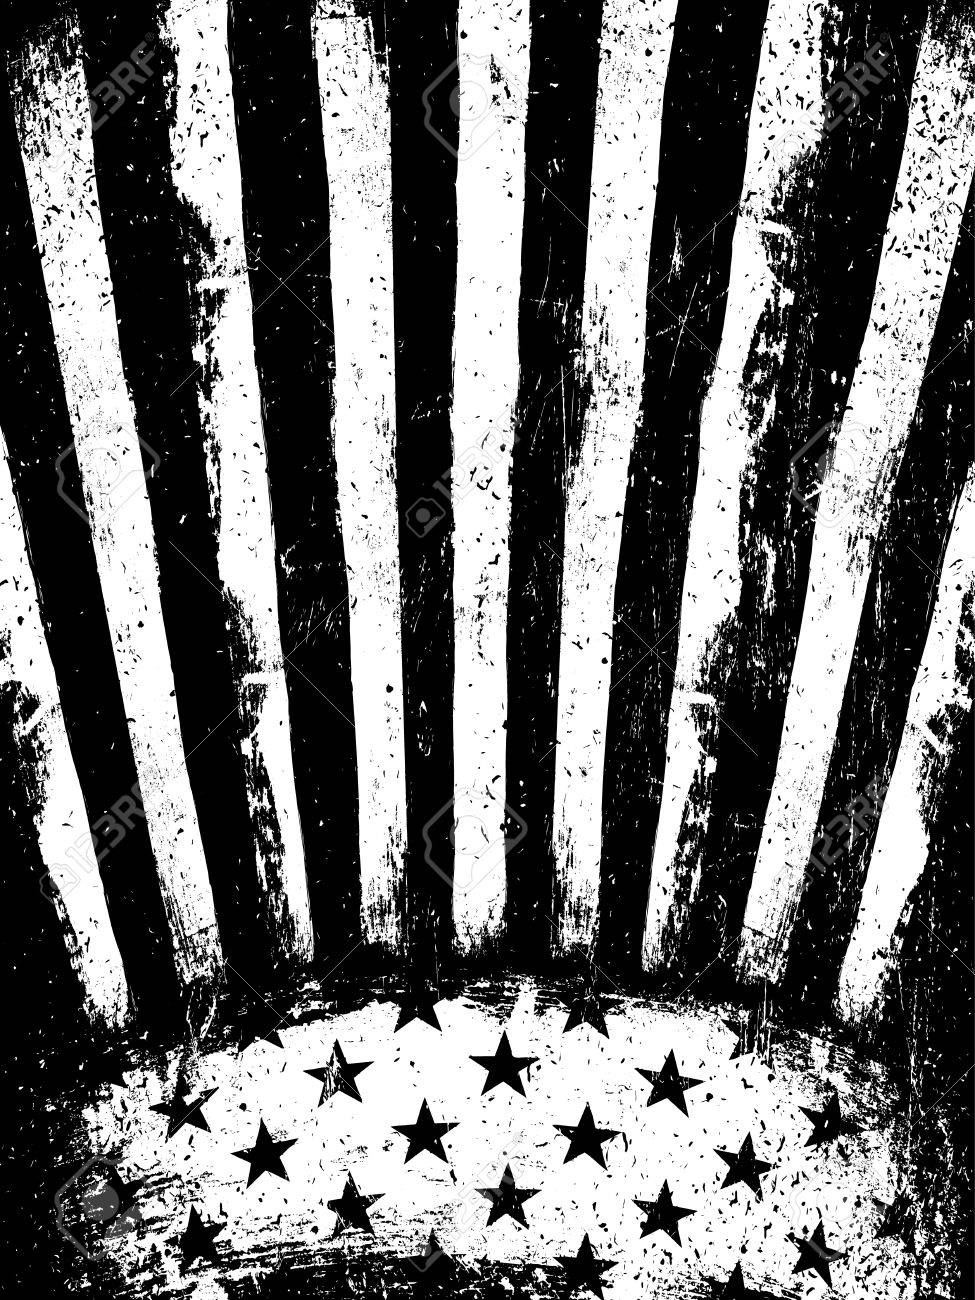 5a43caef42ed Monochrome Negative Photocopy American Flag Background. Grunge Aged  VectorTemplate. Vertical orientation. Stock Vector